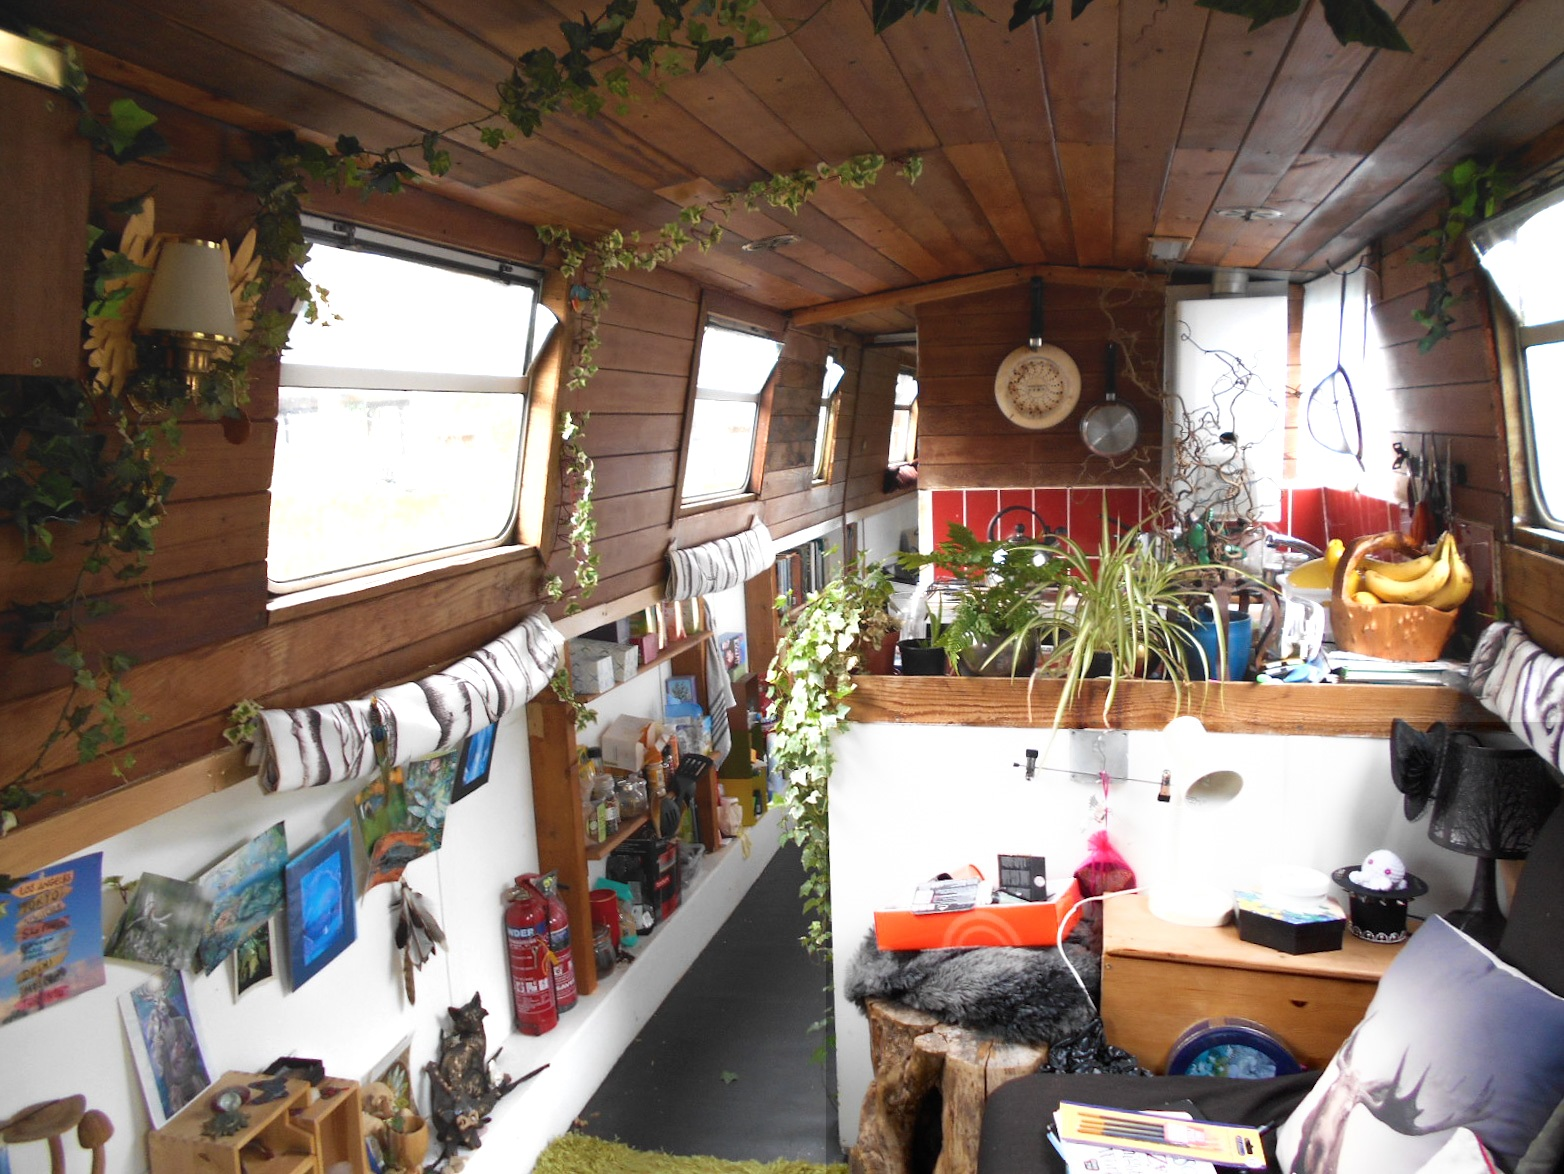 Living on a houseboat my decorating tips for small spaces